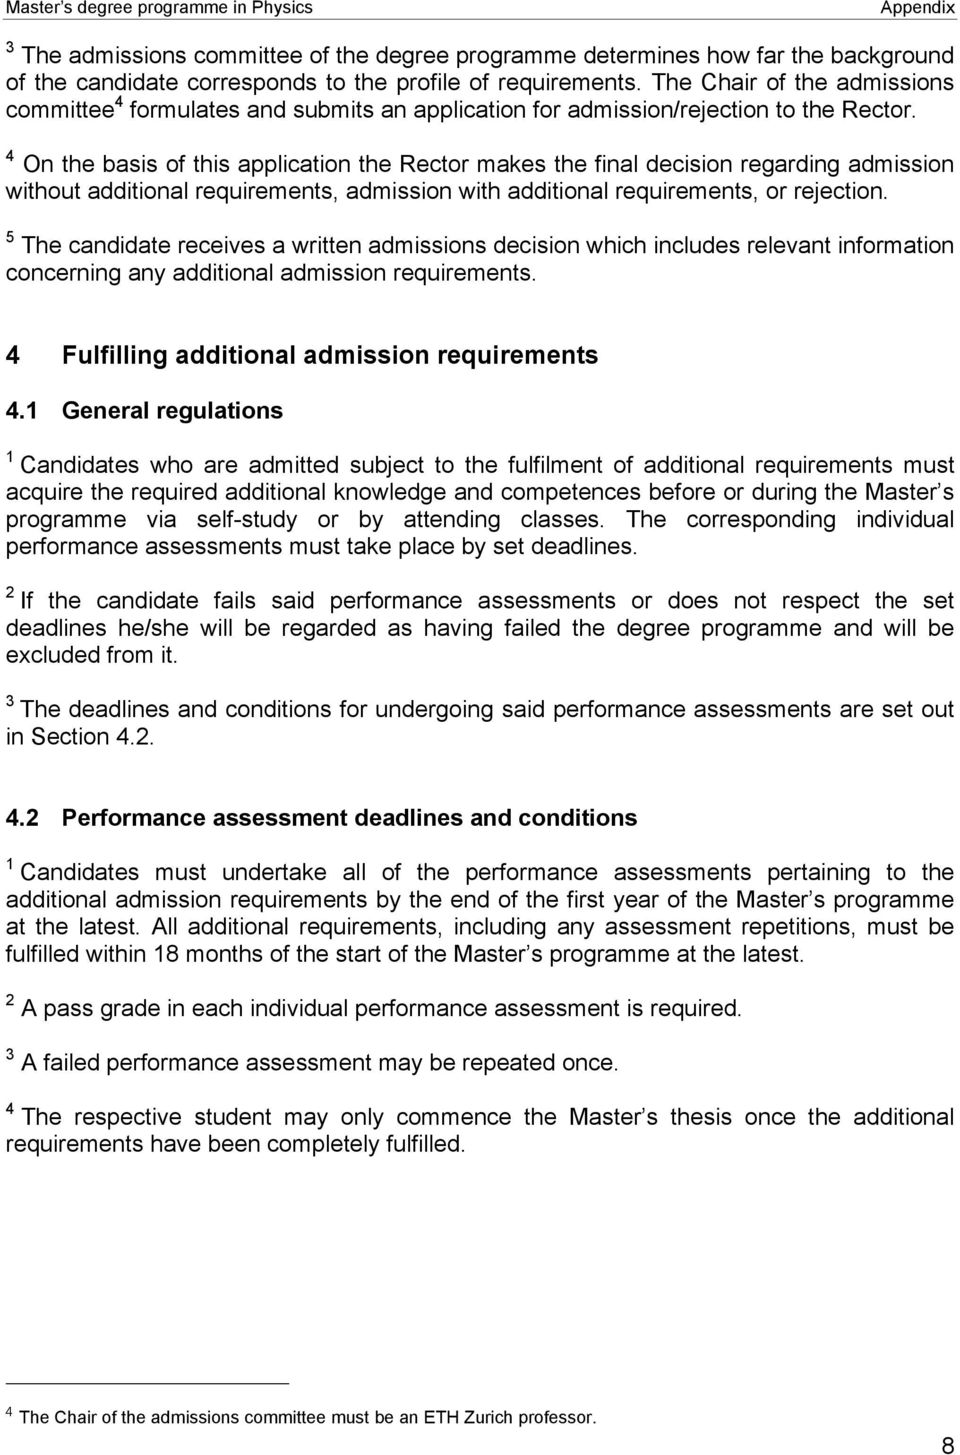 4 On the basis of this application the Rector makes the final decision regarding admission without additional requirements, admission with additional requirements, or rejection.